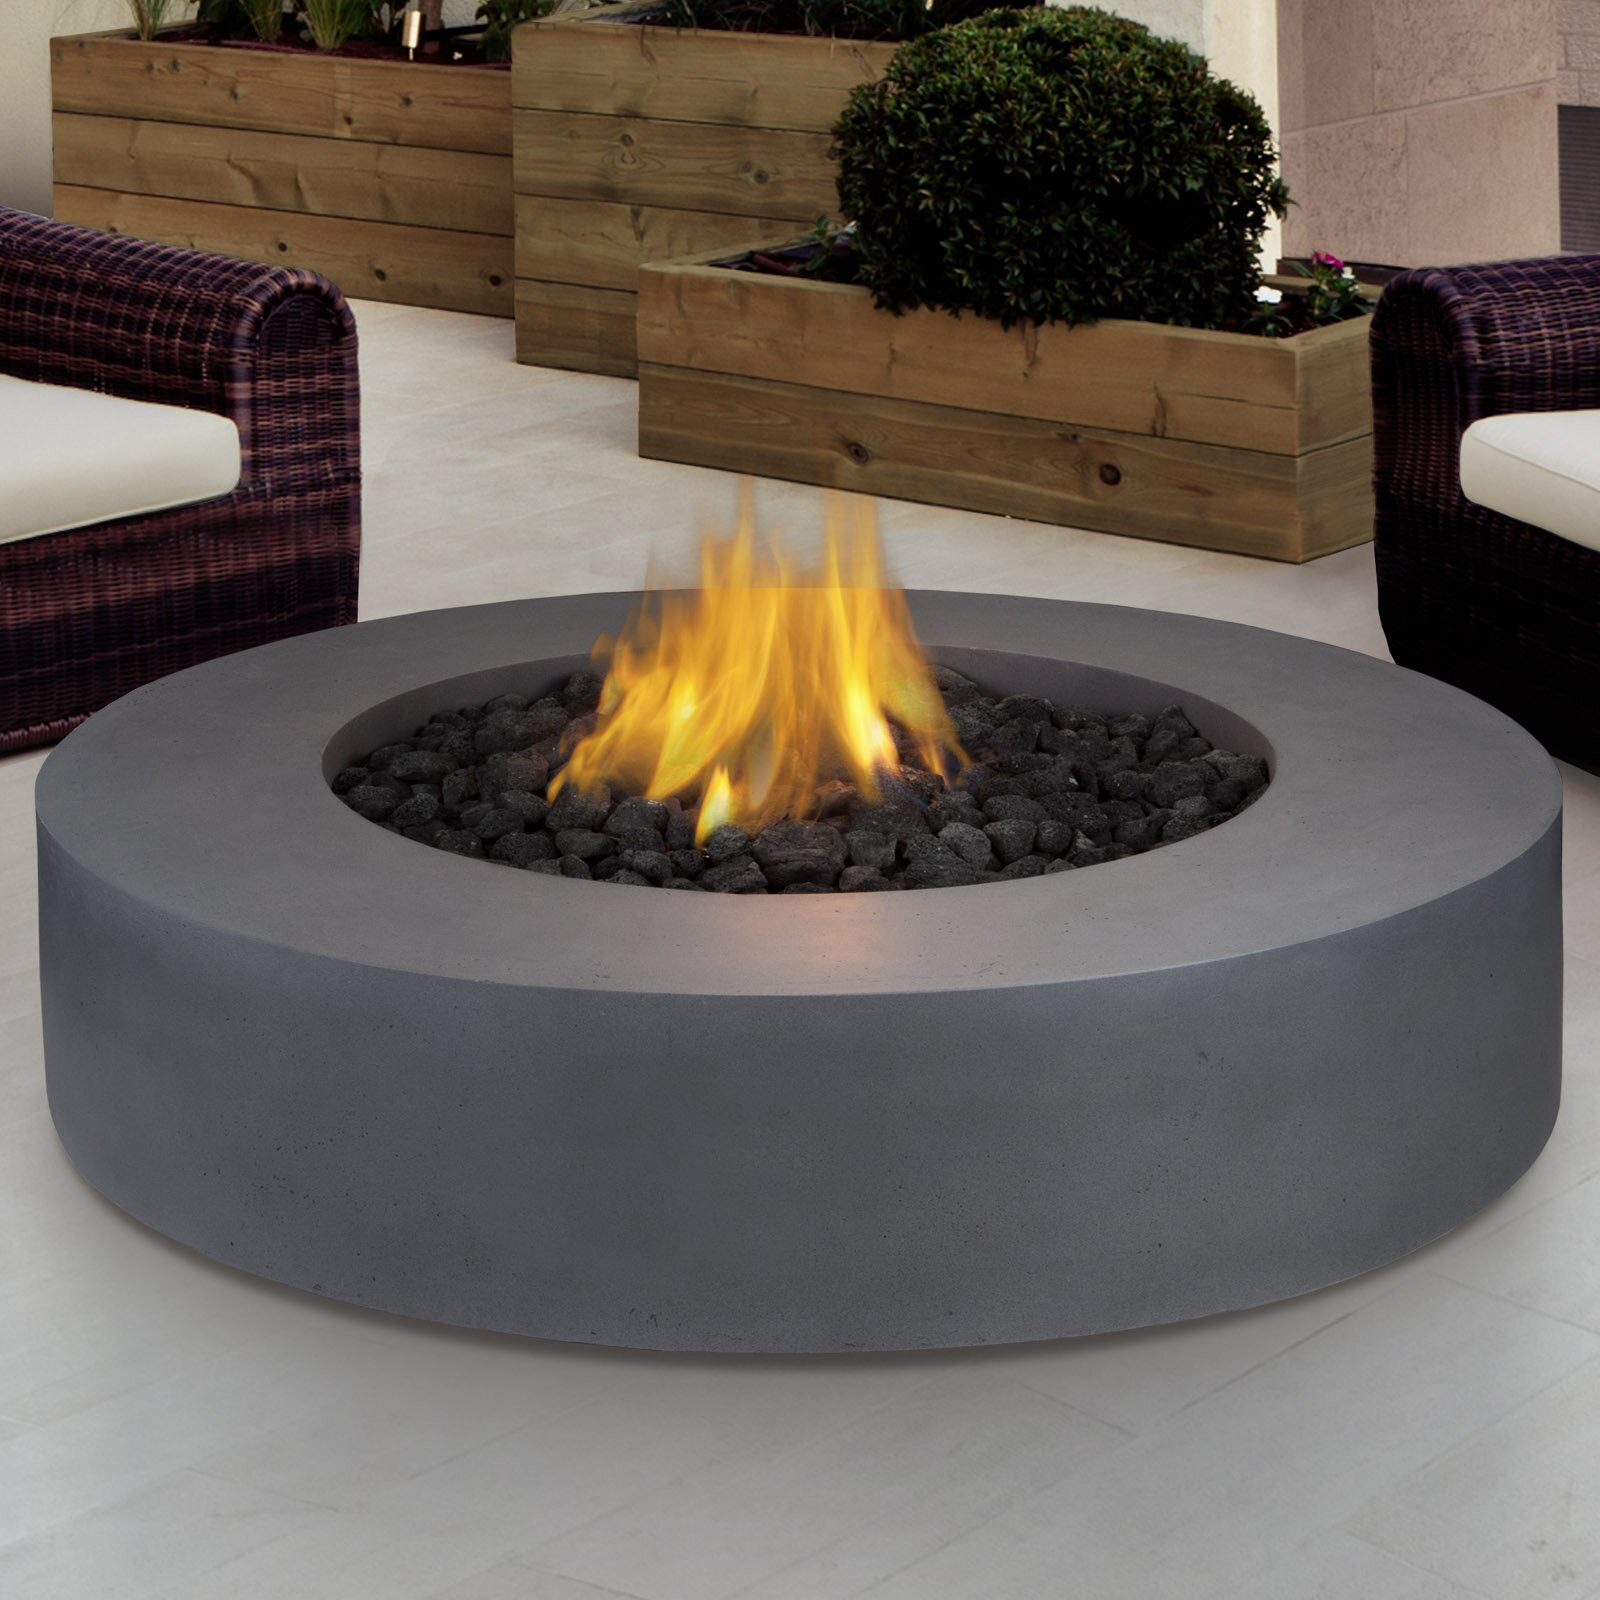 Propane Fire Pit Table  Real Flame Mezzo Propane Fire Pit Table & Reviews